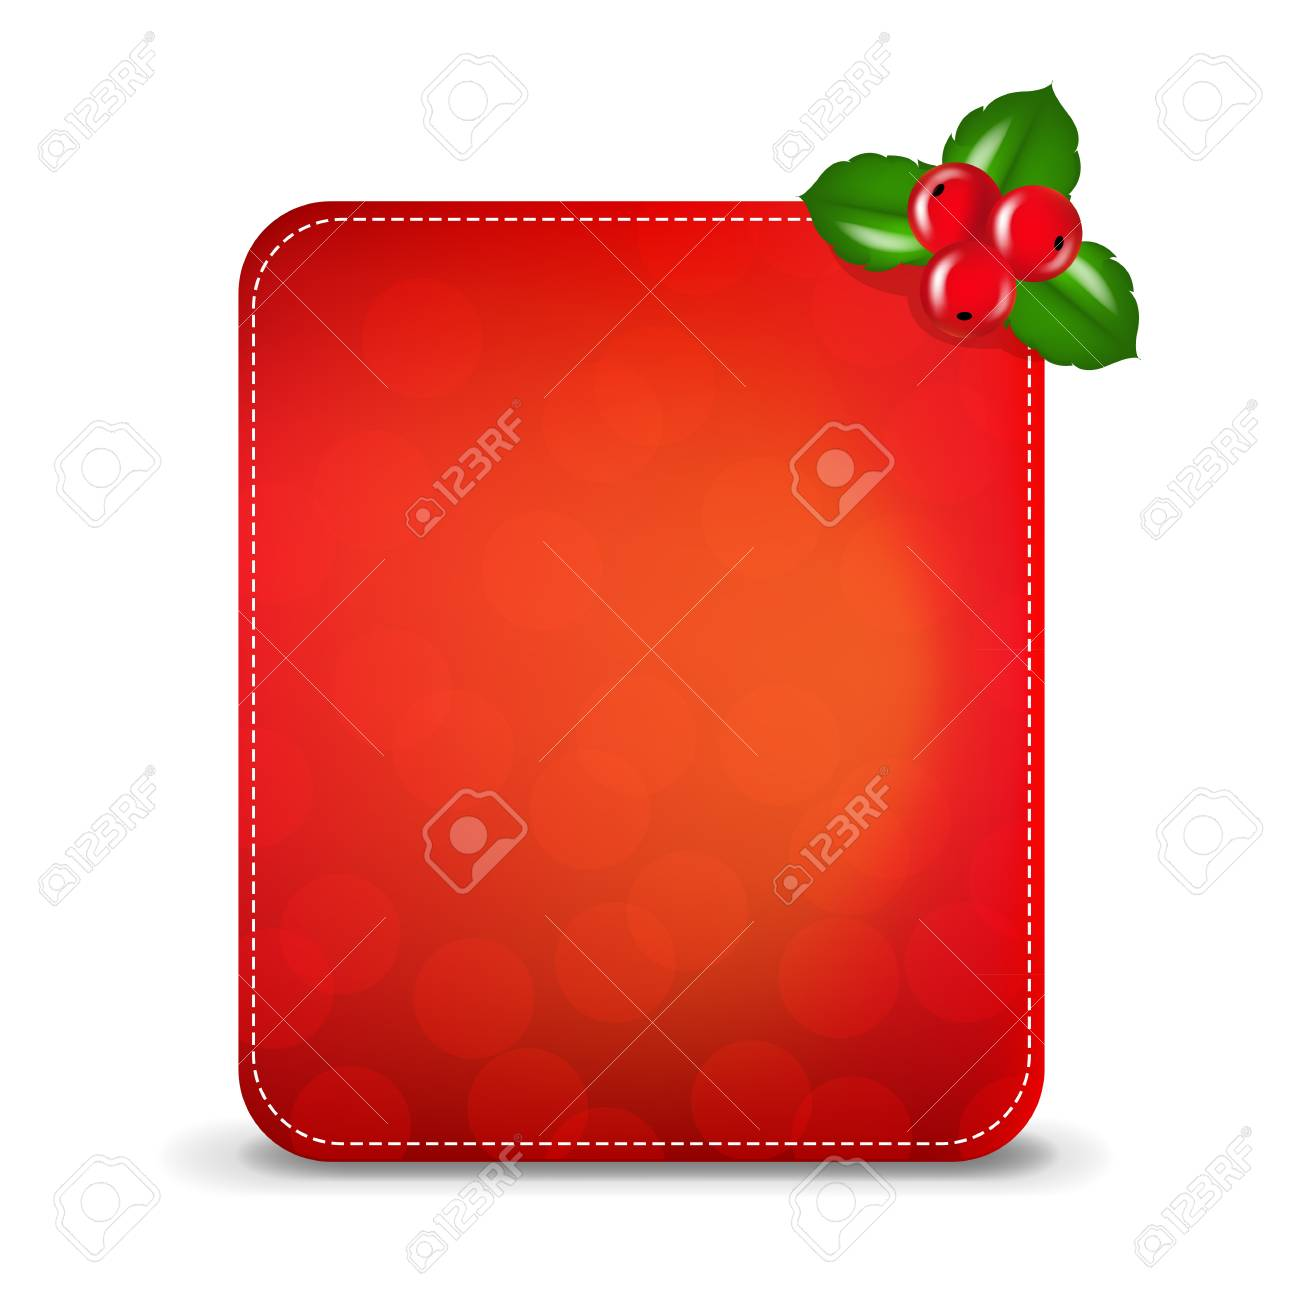 Christmas Banner With Holly Berry,  Illustration Stock Vector - 16448612